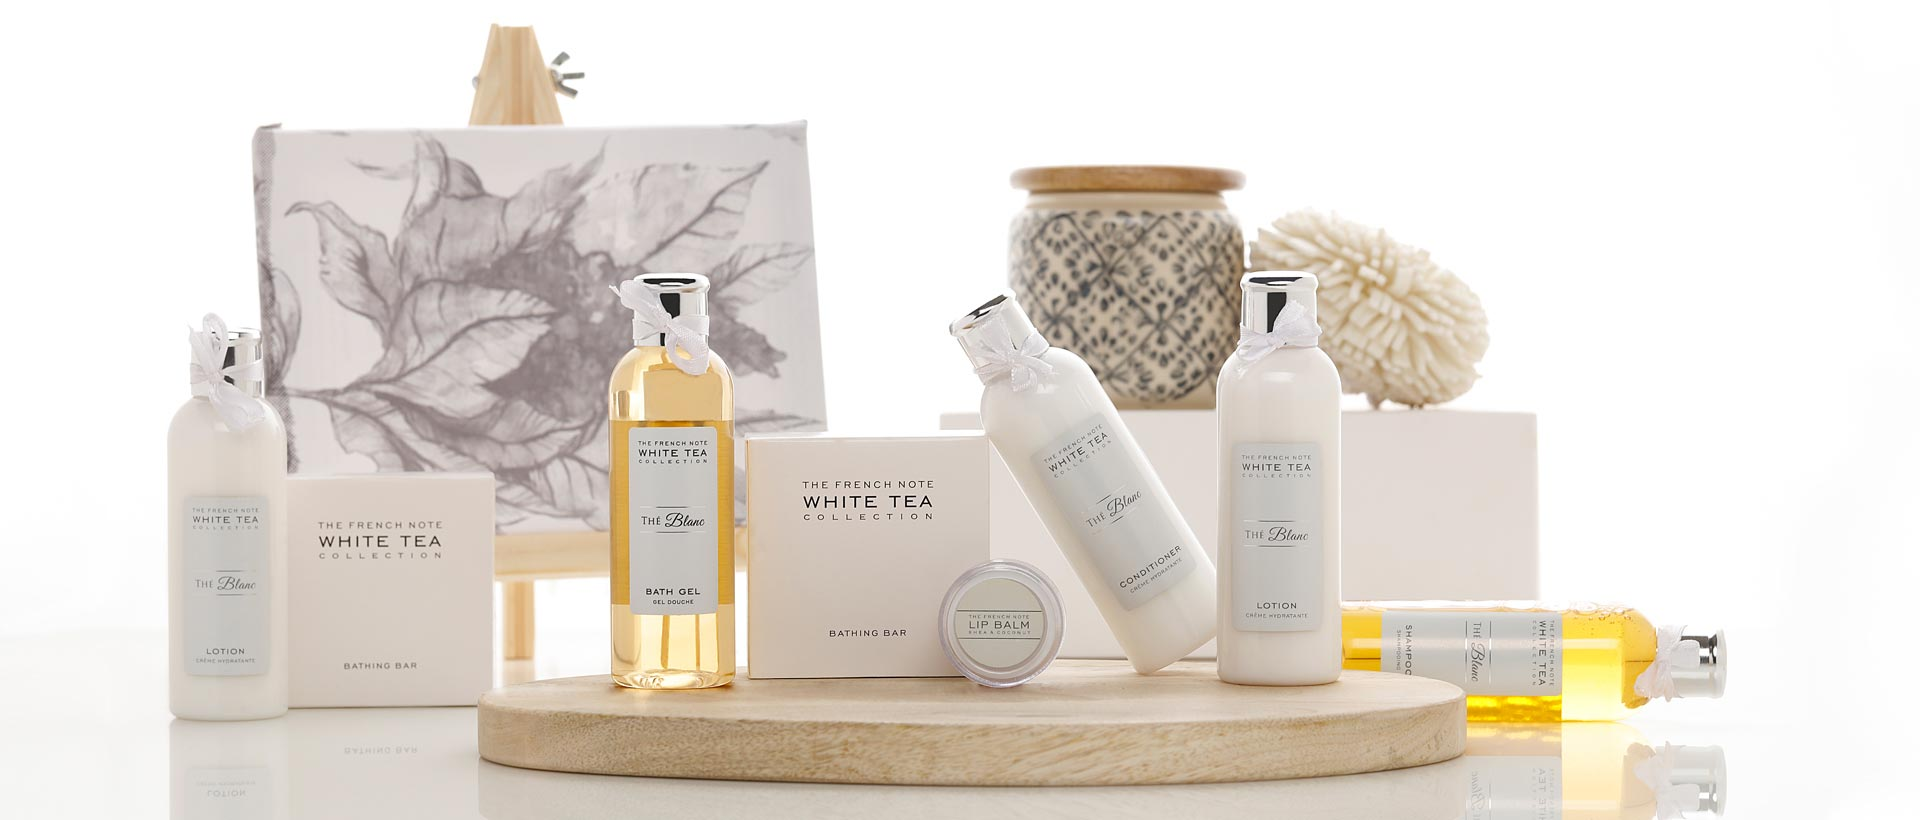 Luxury Hotel Toiletries India, The French Note® White tea Collection The Blanc, Kimirica Hunter International